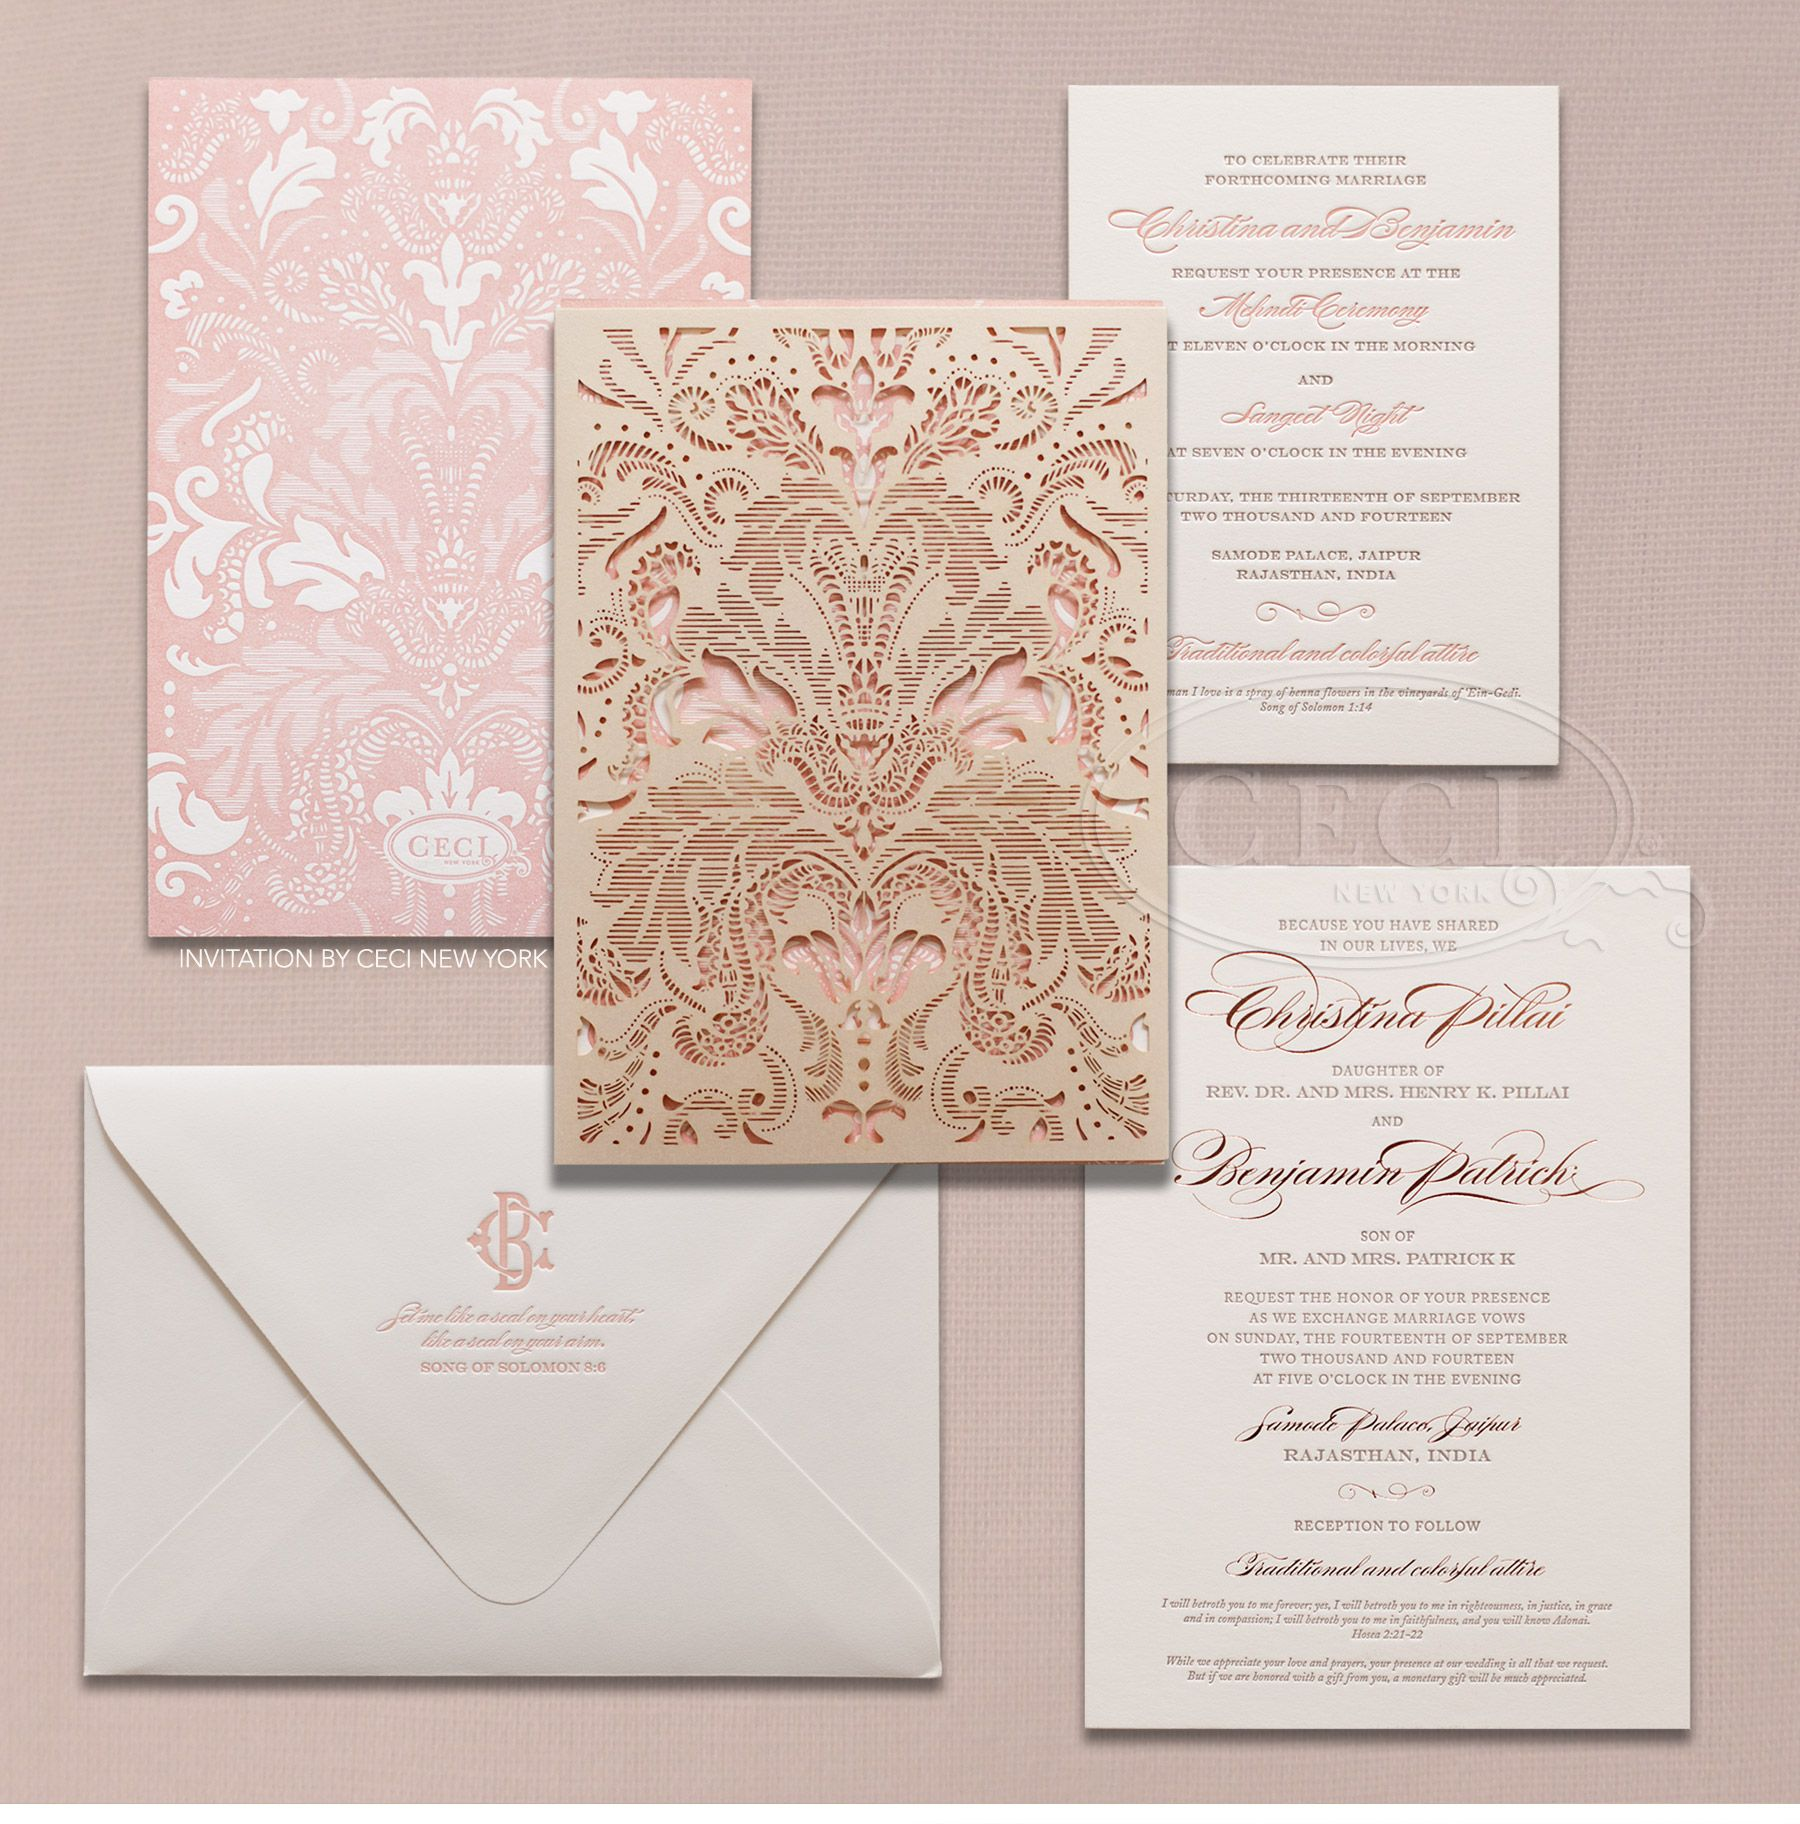 Beautiful Luxury Indian Wedding Invitations Pink Gold Ideas Pinterest Indian wedding